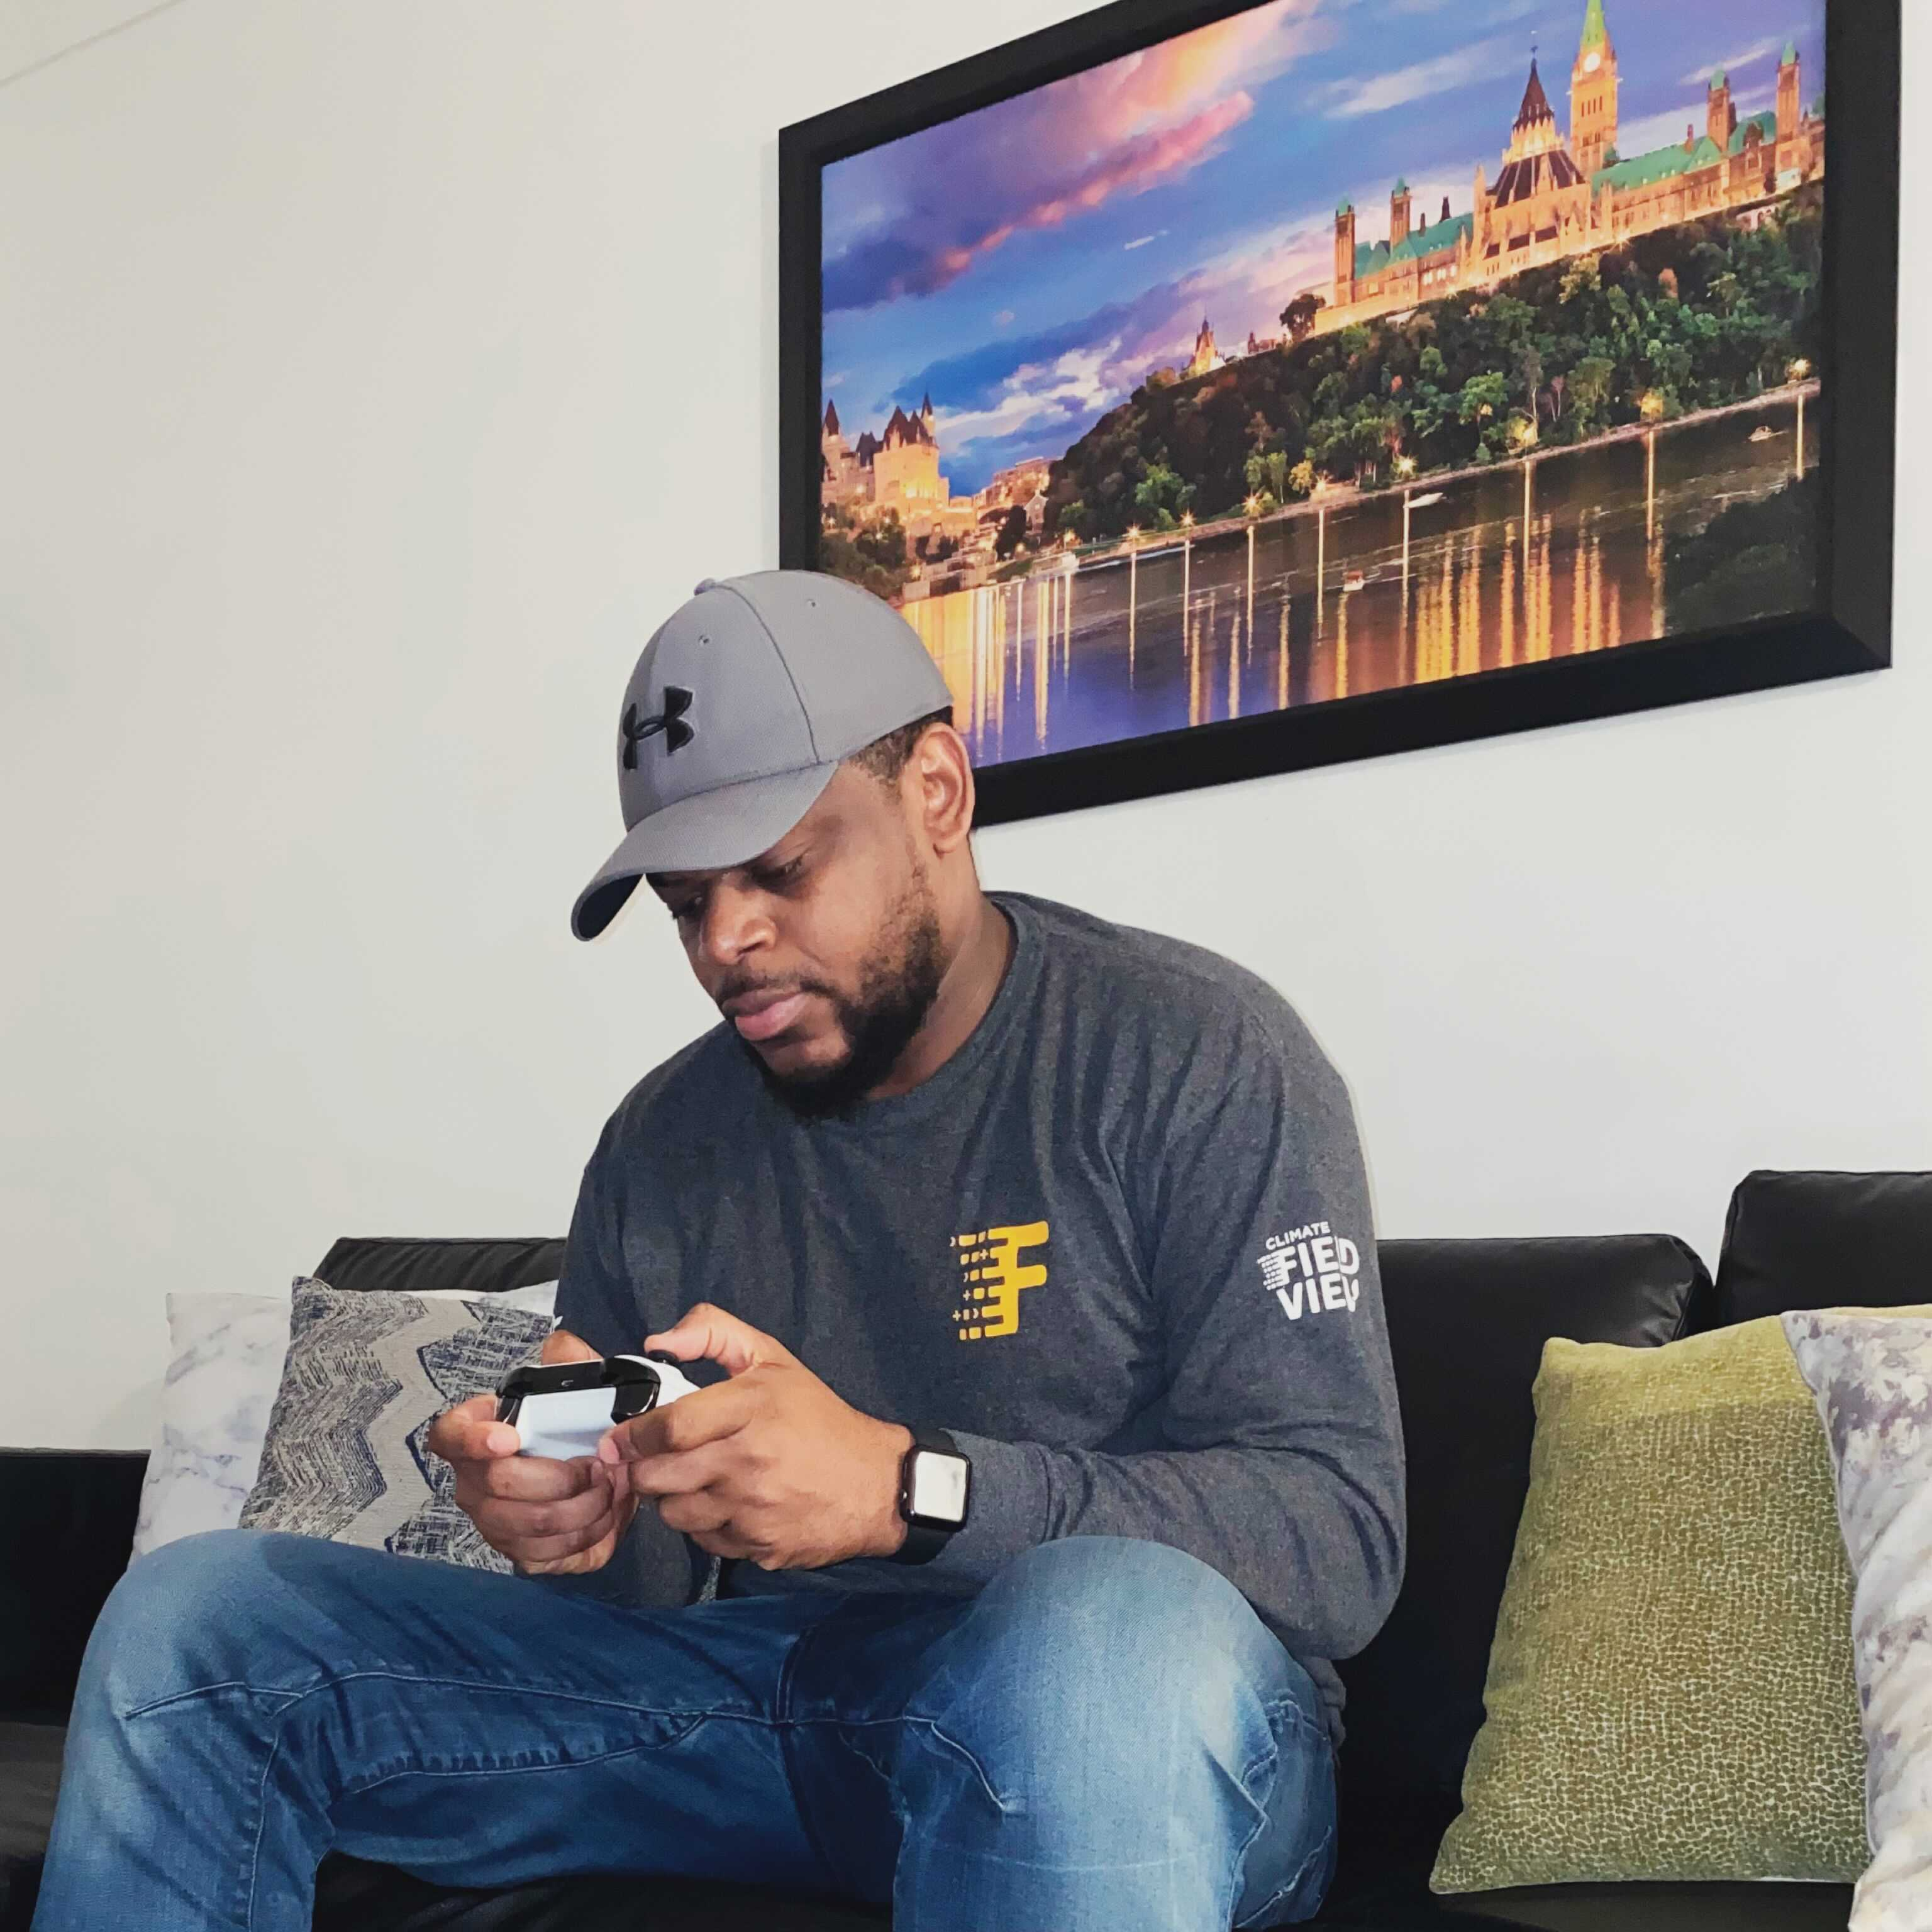 Gauthier Mubwa relaxing and playing video games